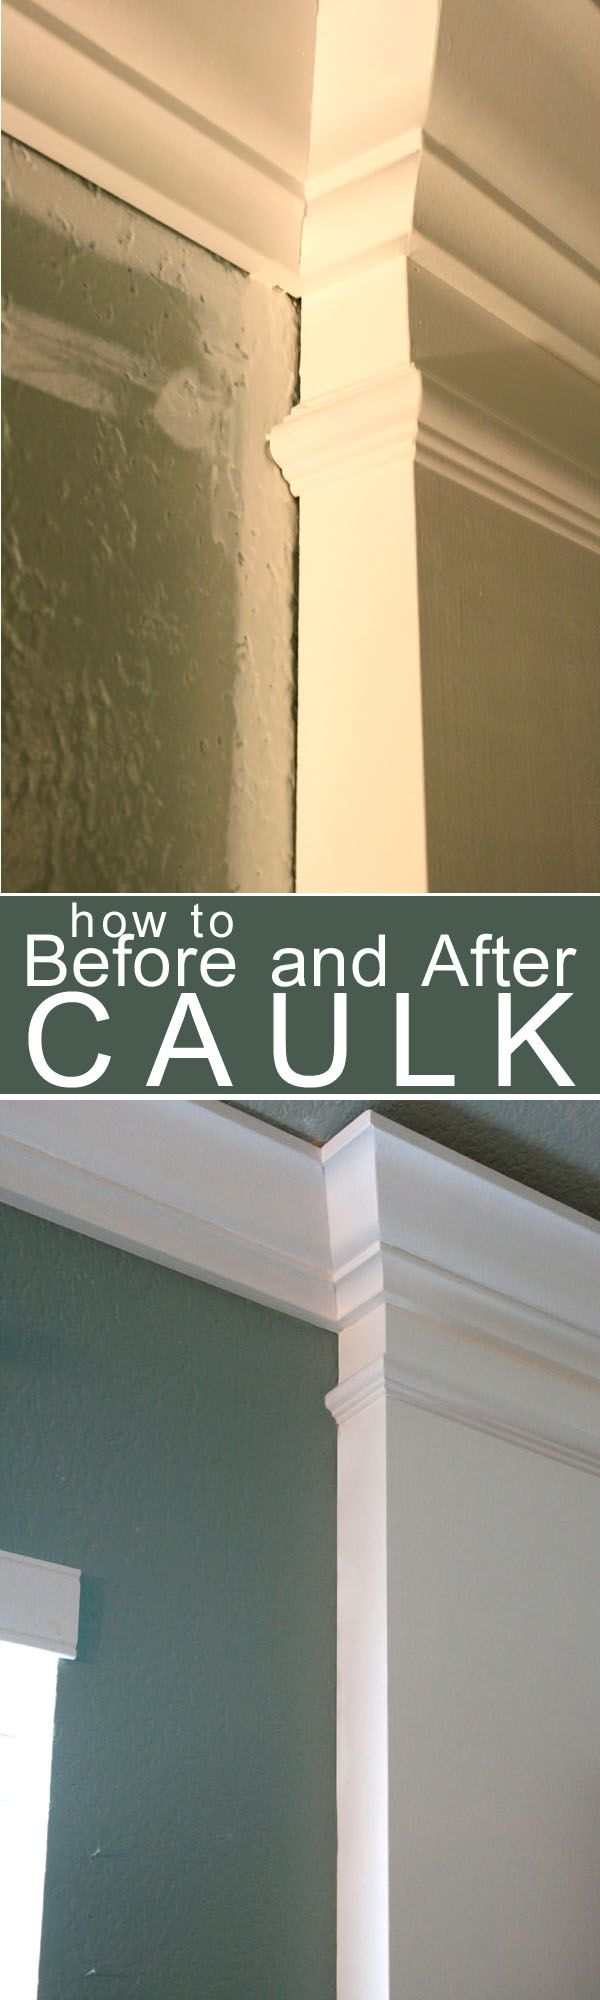 Our non-painted caulk in our bathrooms attracts dirt & hair. Will ...